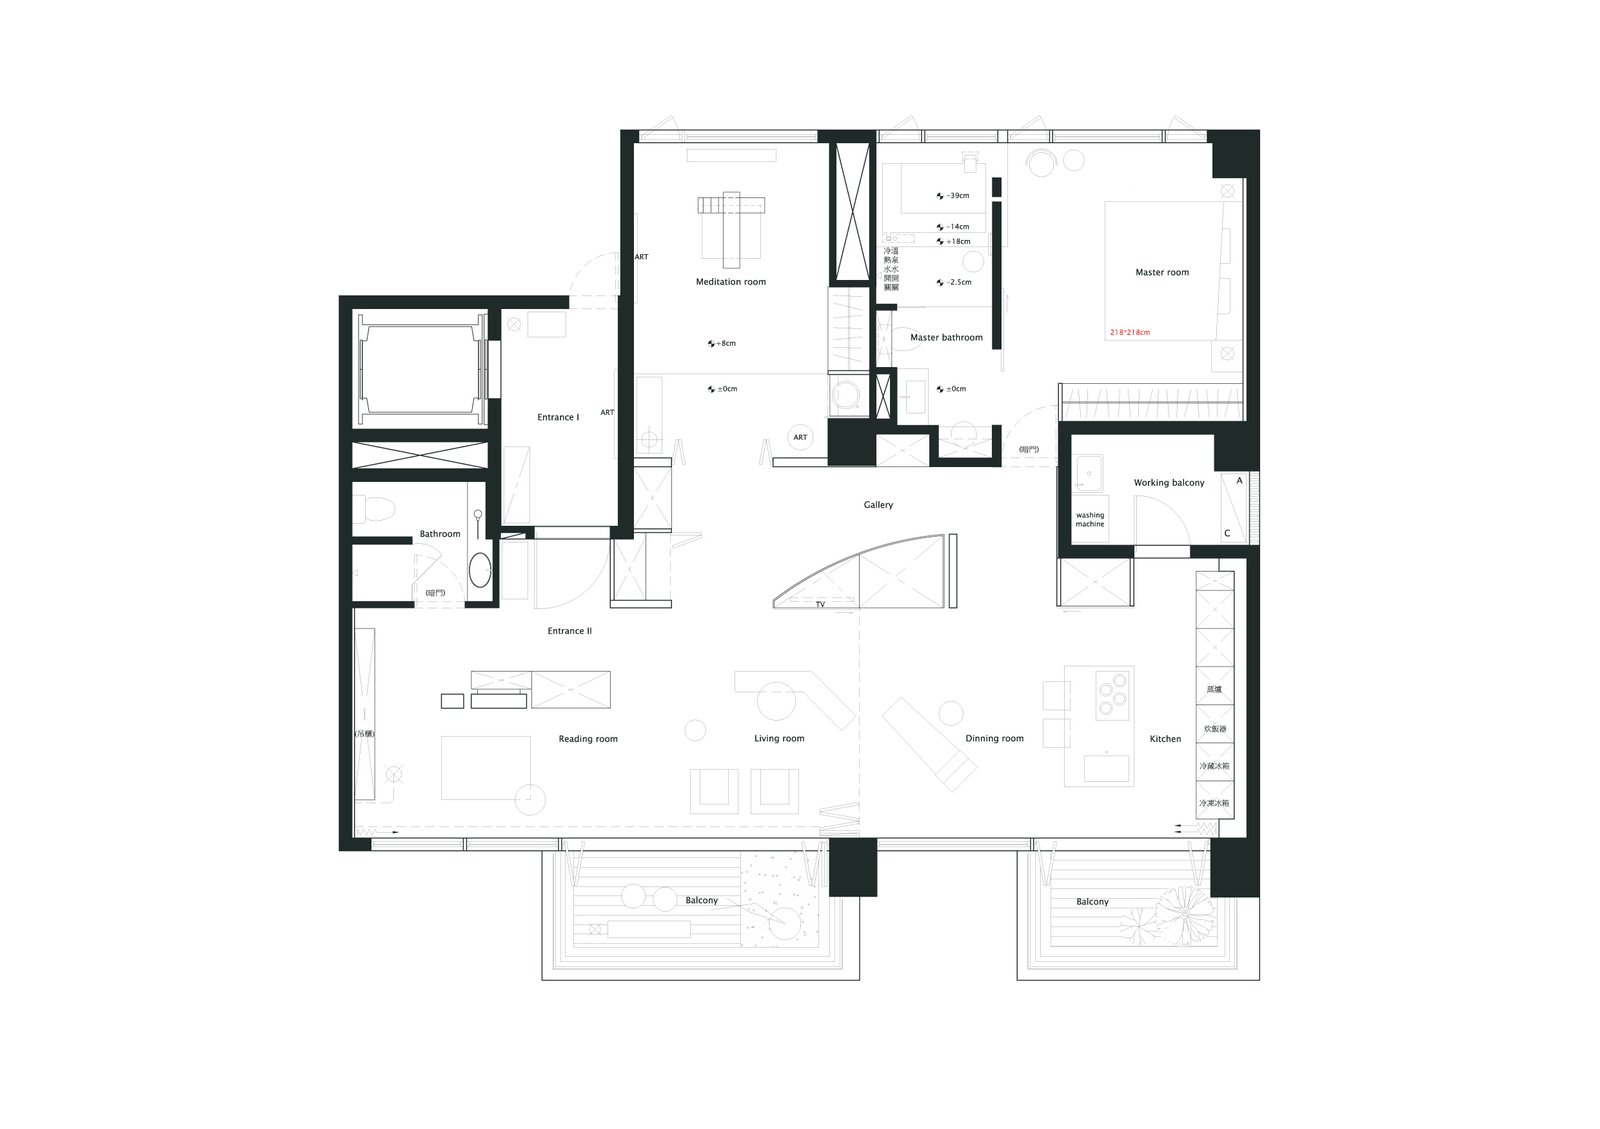 Floor Plan Drawing  Photo 16 of 16 in A Couple Embrace Wabi-Sabi Design to Travel Back to the Past